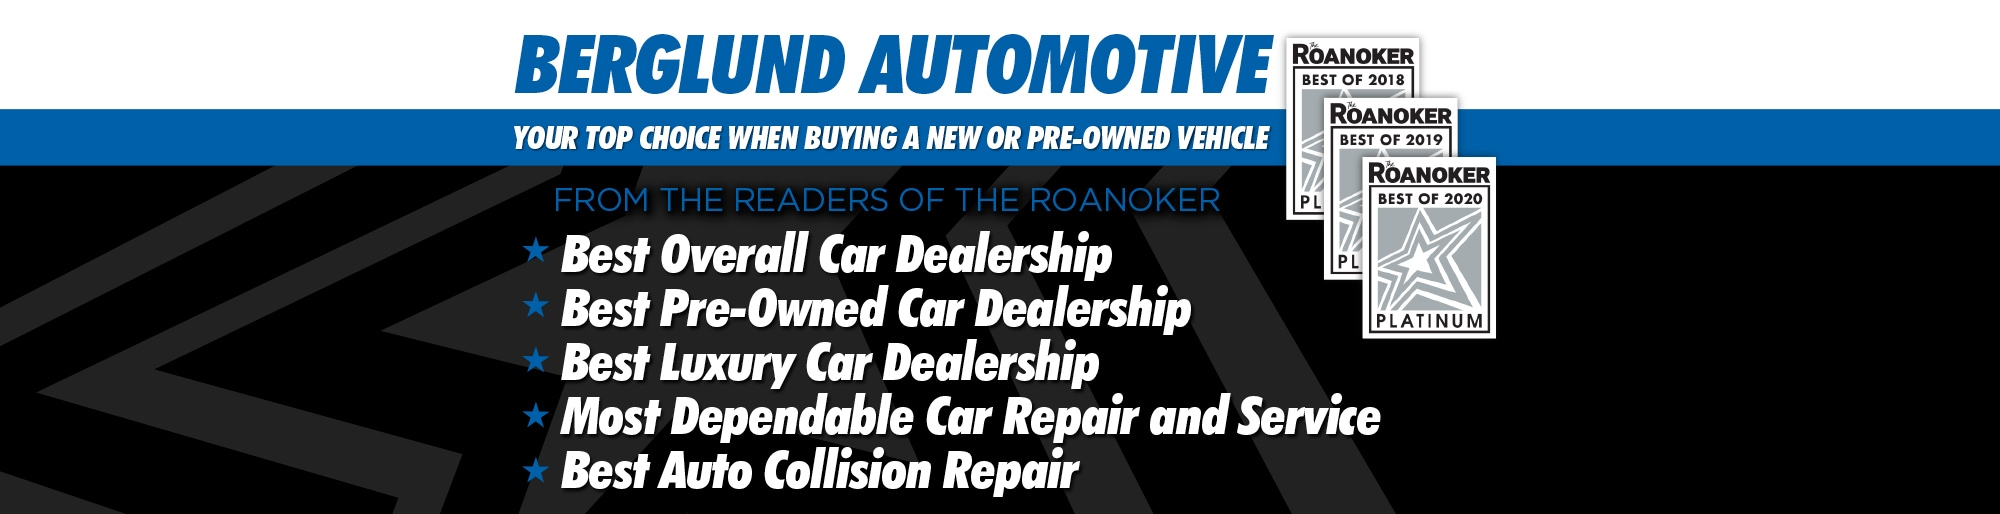 Used Cars Lynchburg Va >> Berglund Auto Group | New & Used Car Dealers in Roanoke ...